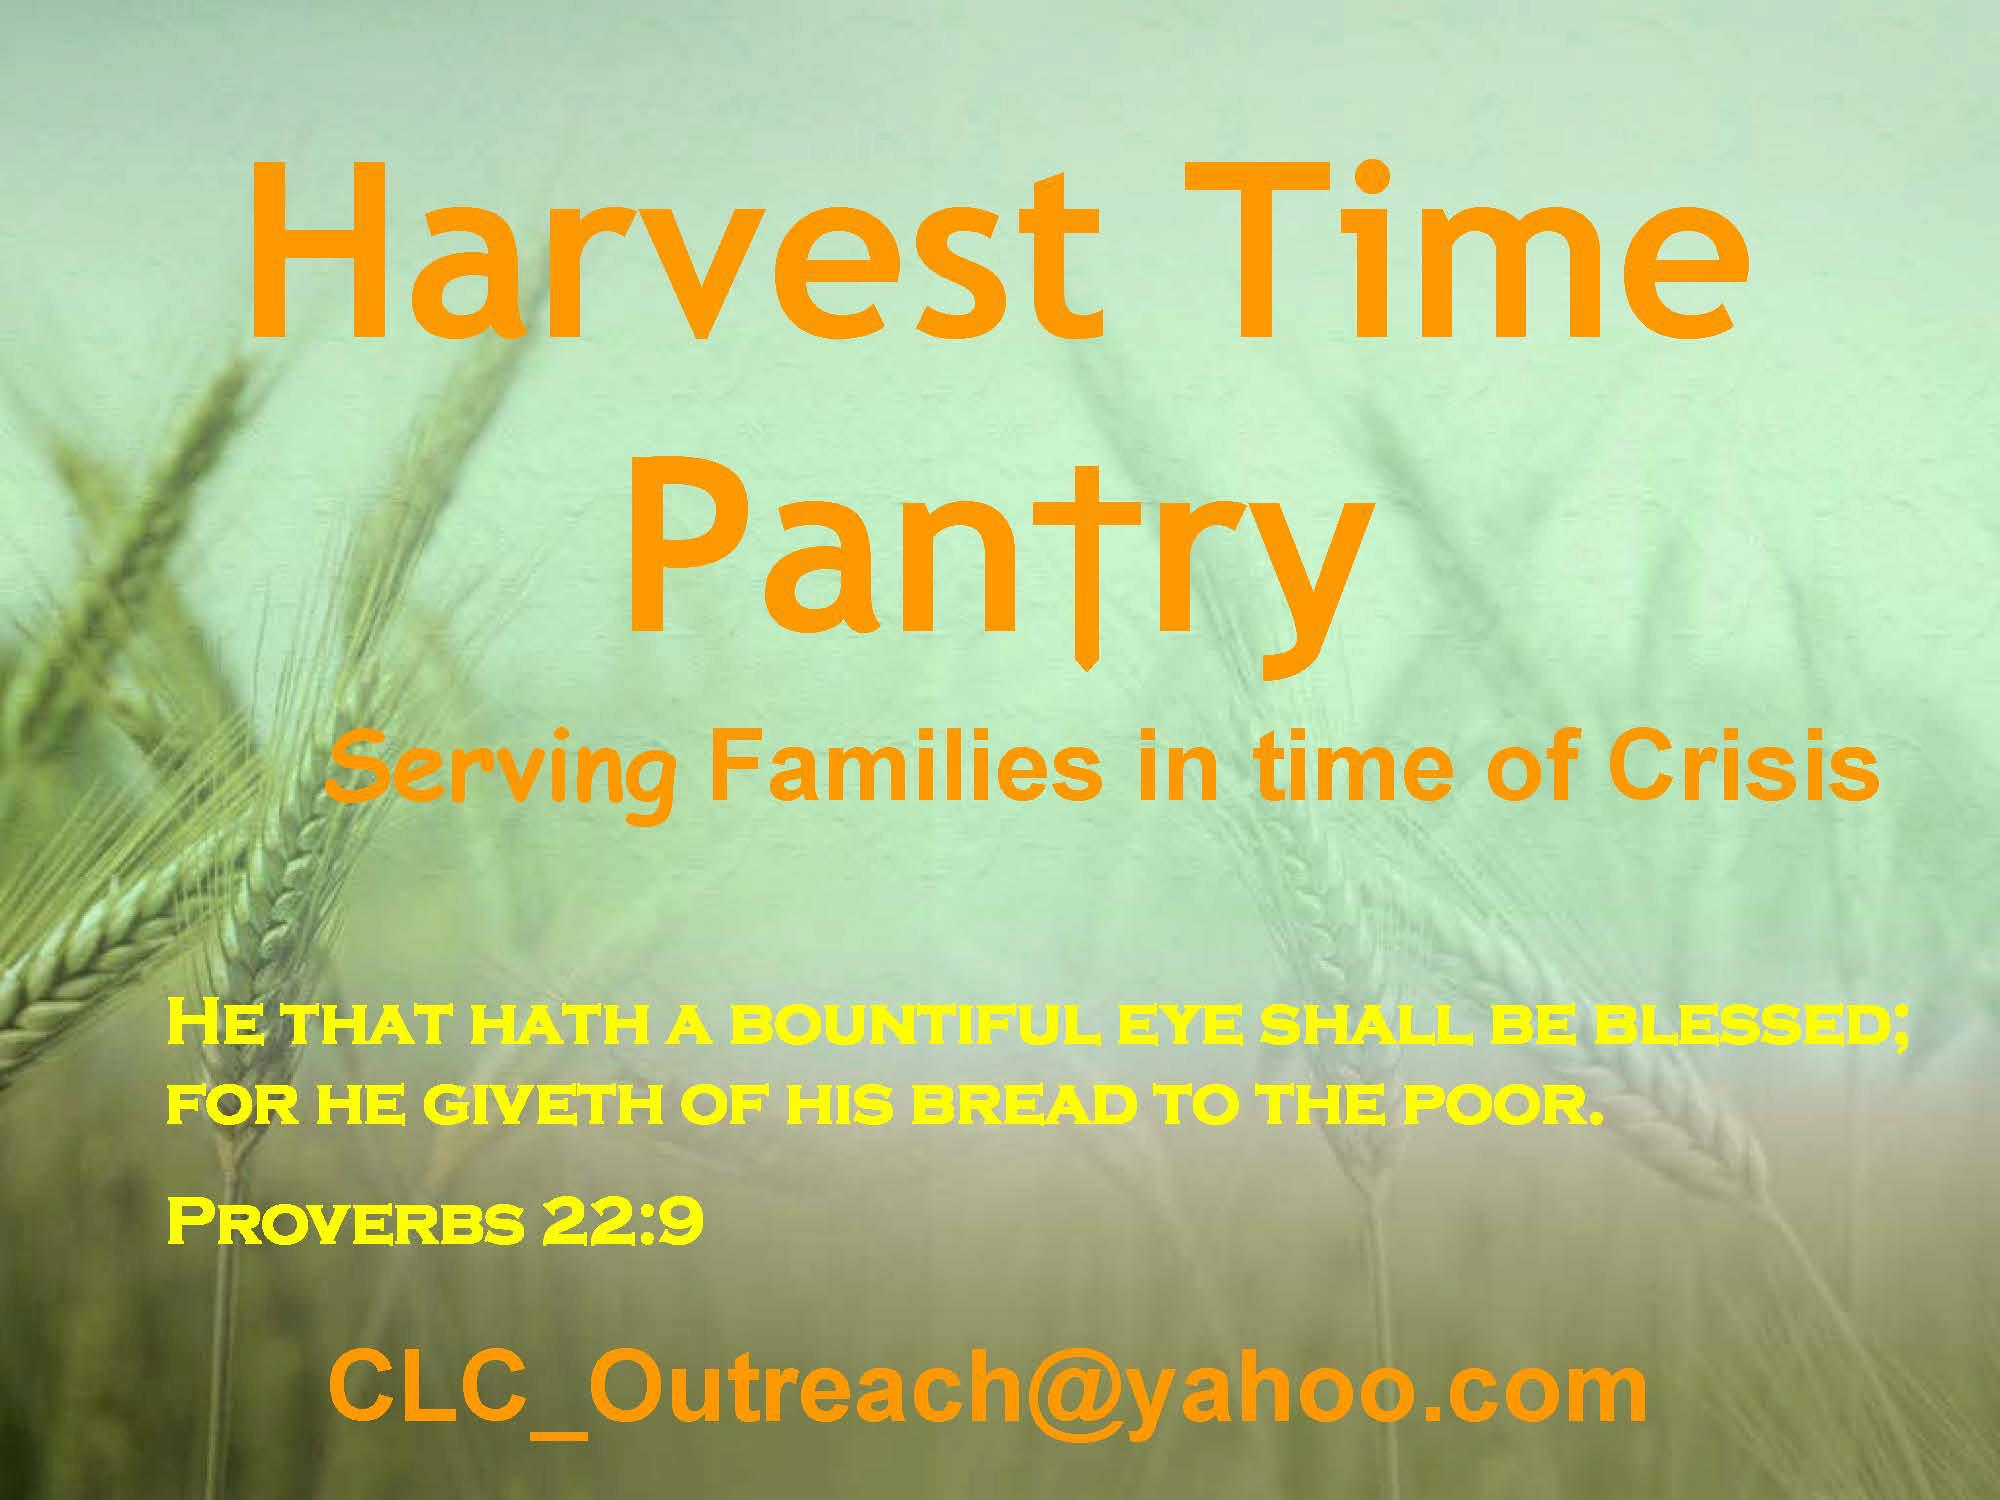 Christian Life Center of Centerton  Harvest Time Food Pantry